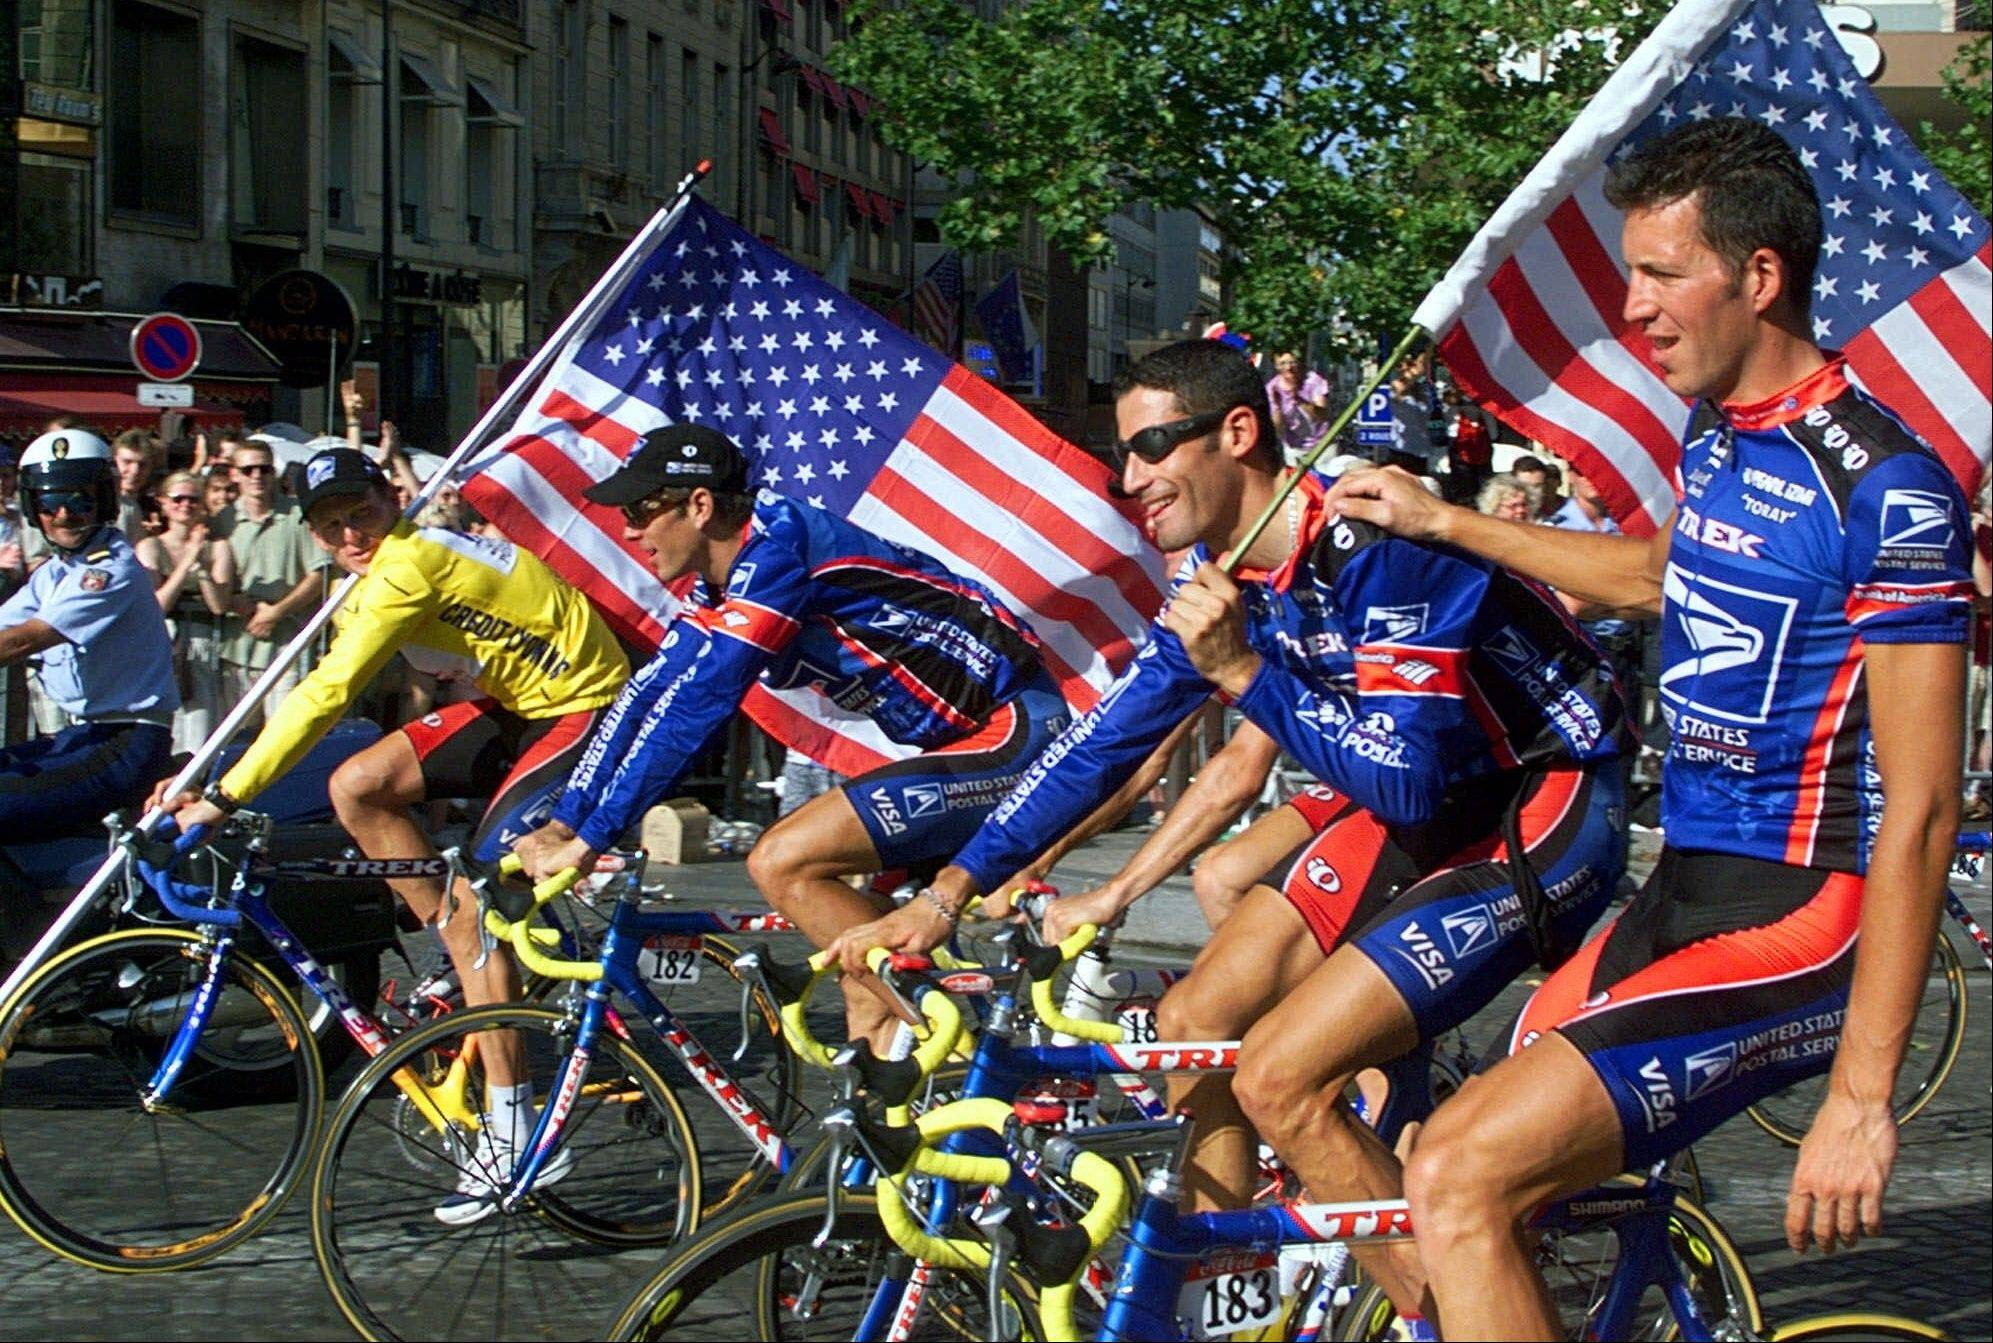 This July 25, 1999, file photo shows Tour de France winner Lance Armstrong of the U.S. left, riding down the Champs Elysees avenue with teammates, from left, Frankie Andreu, of the U.S., George Hincapie of the U.S., and Pascal Derame, of France, after the 20th and final stage of the Tour de France cycling race, in Paris.